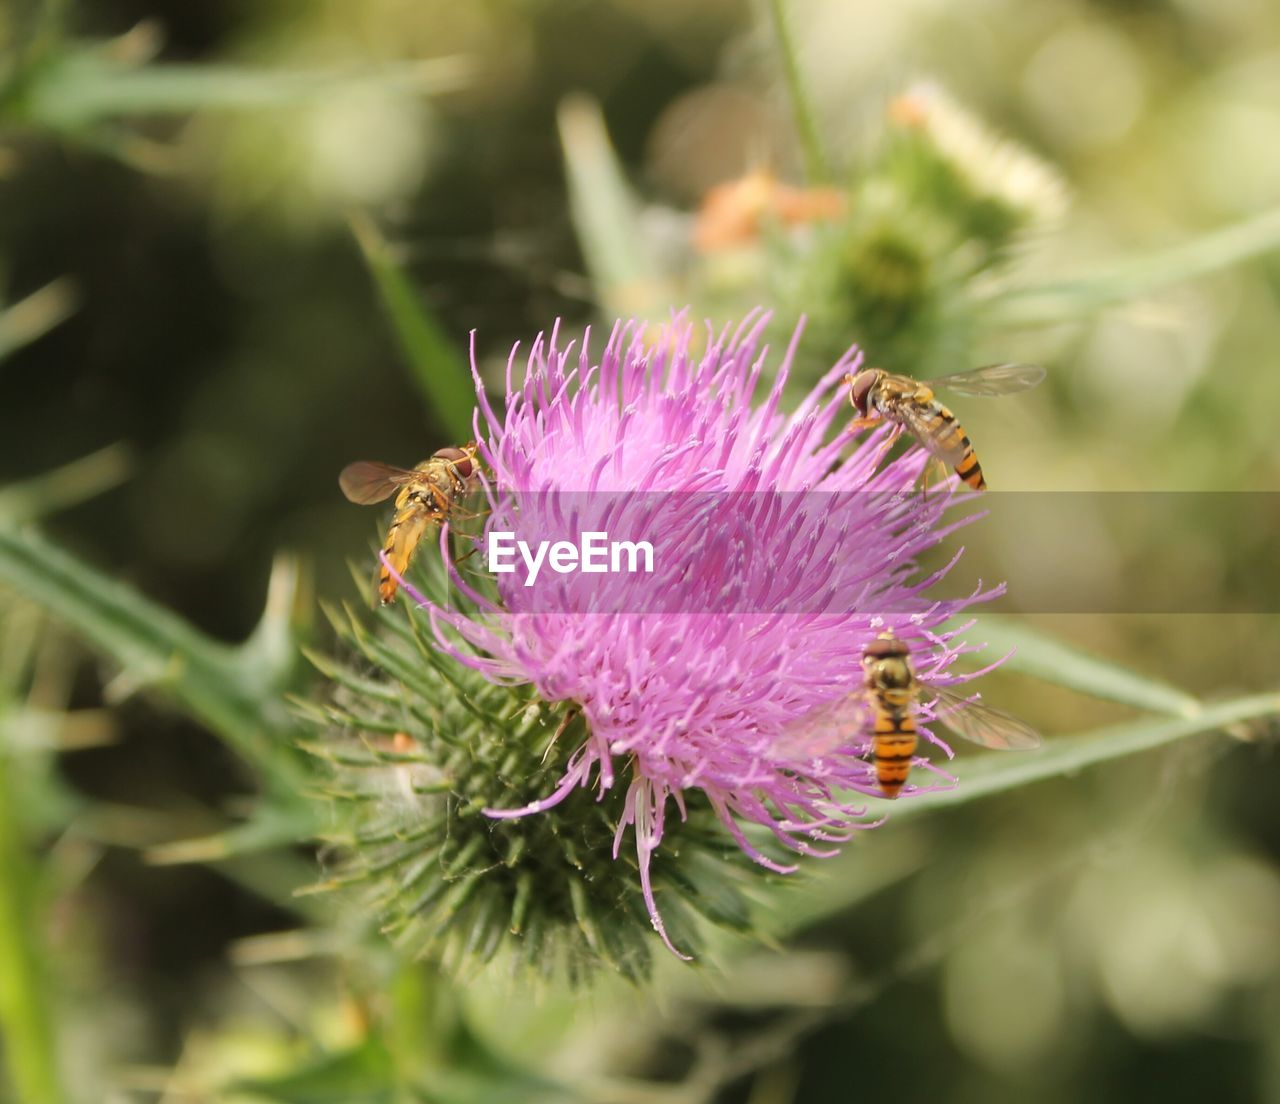 flower, nature, growth, beauty in nature, fragility, plant, insect, purple, one animal, no people, day, focus on foreground, close-up, animal themes, petal, outdoors, freshness, flower head, thistle, animals in the wild, pollination, bee, passion flower